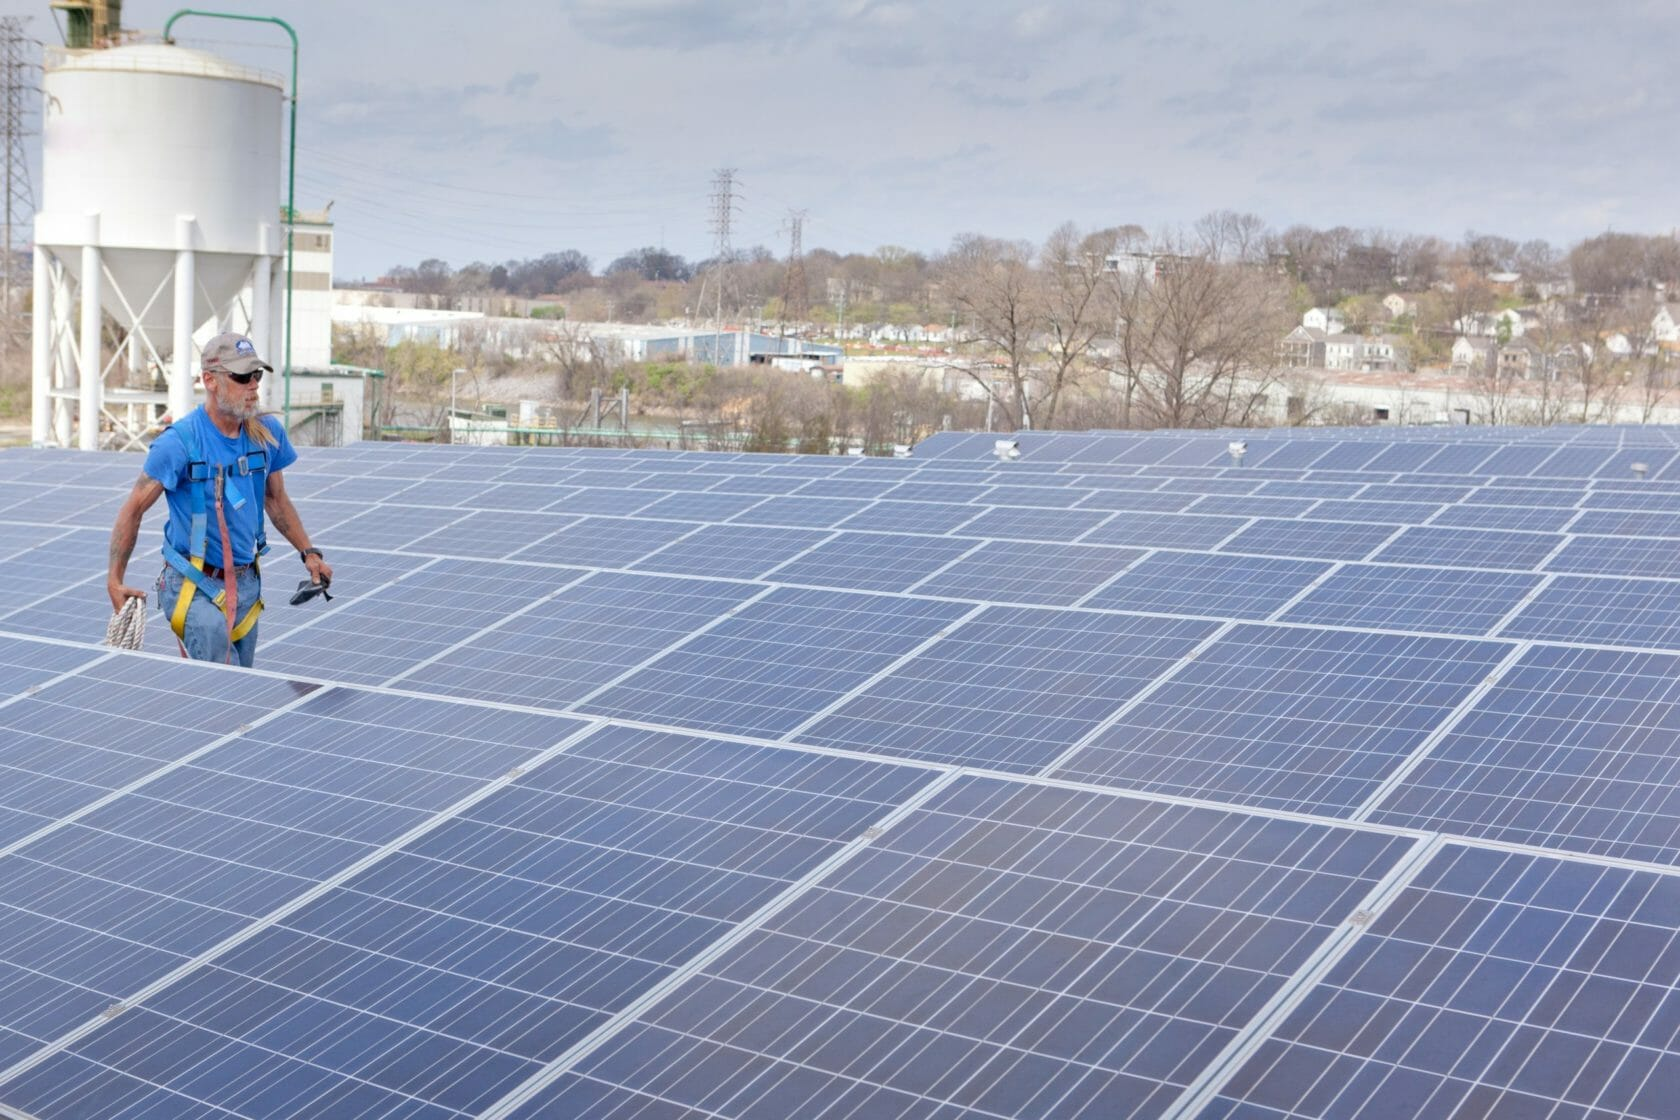 Worker walking through solar panels on a roof